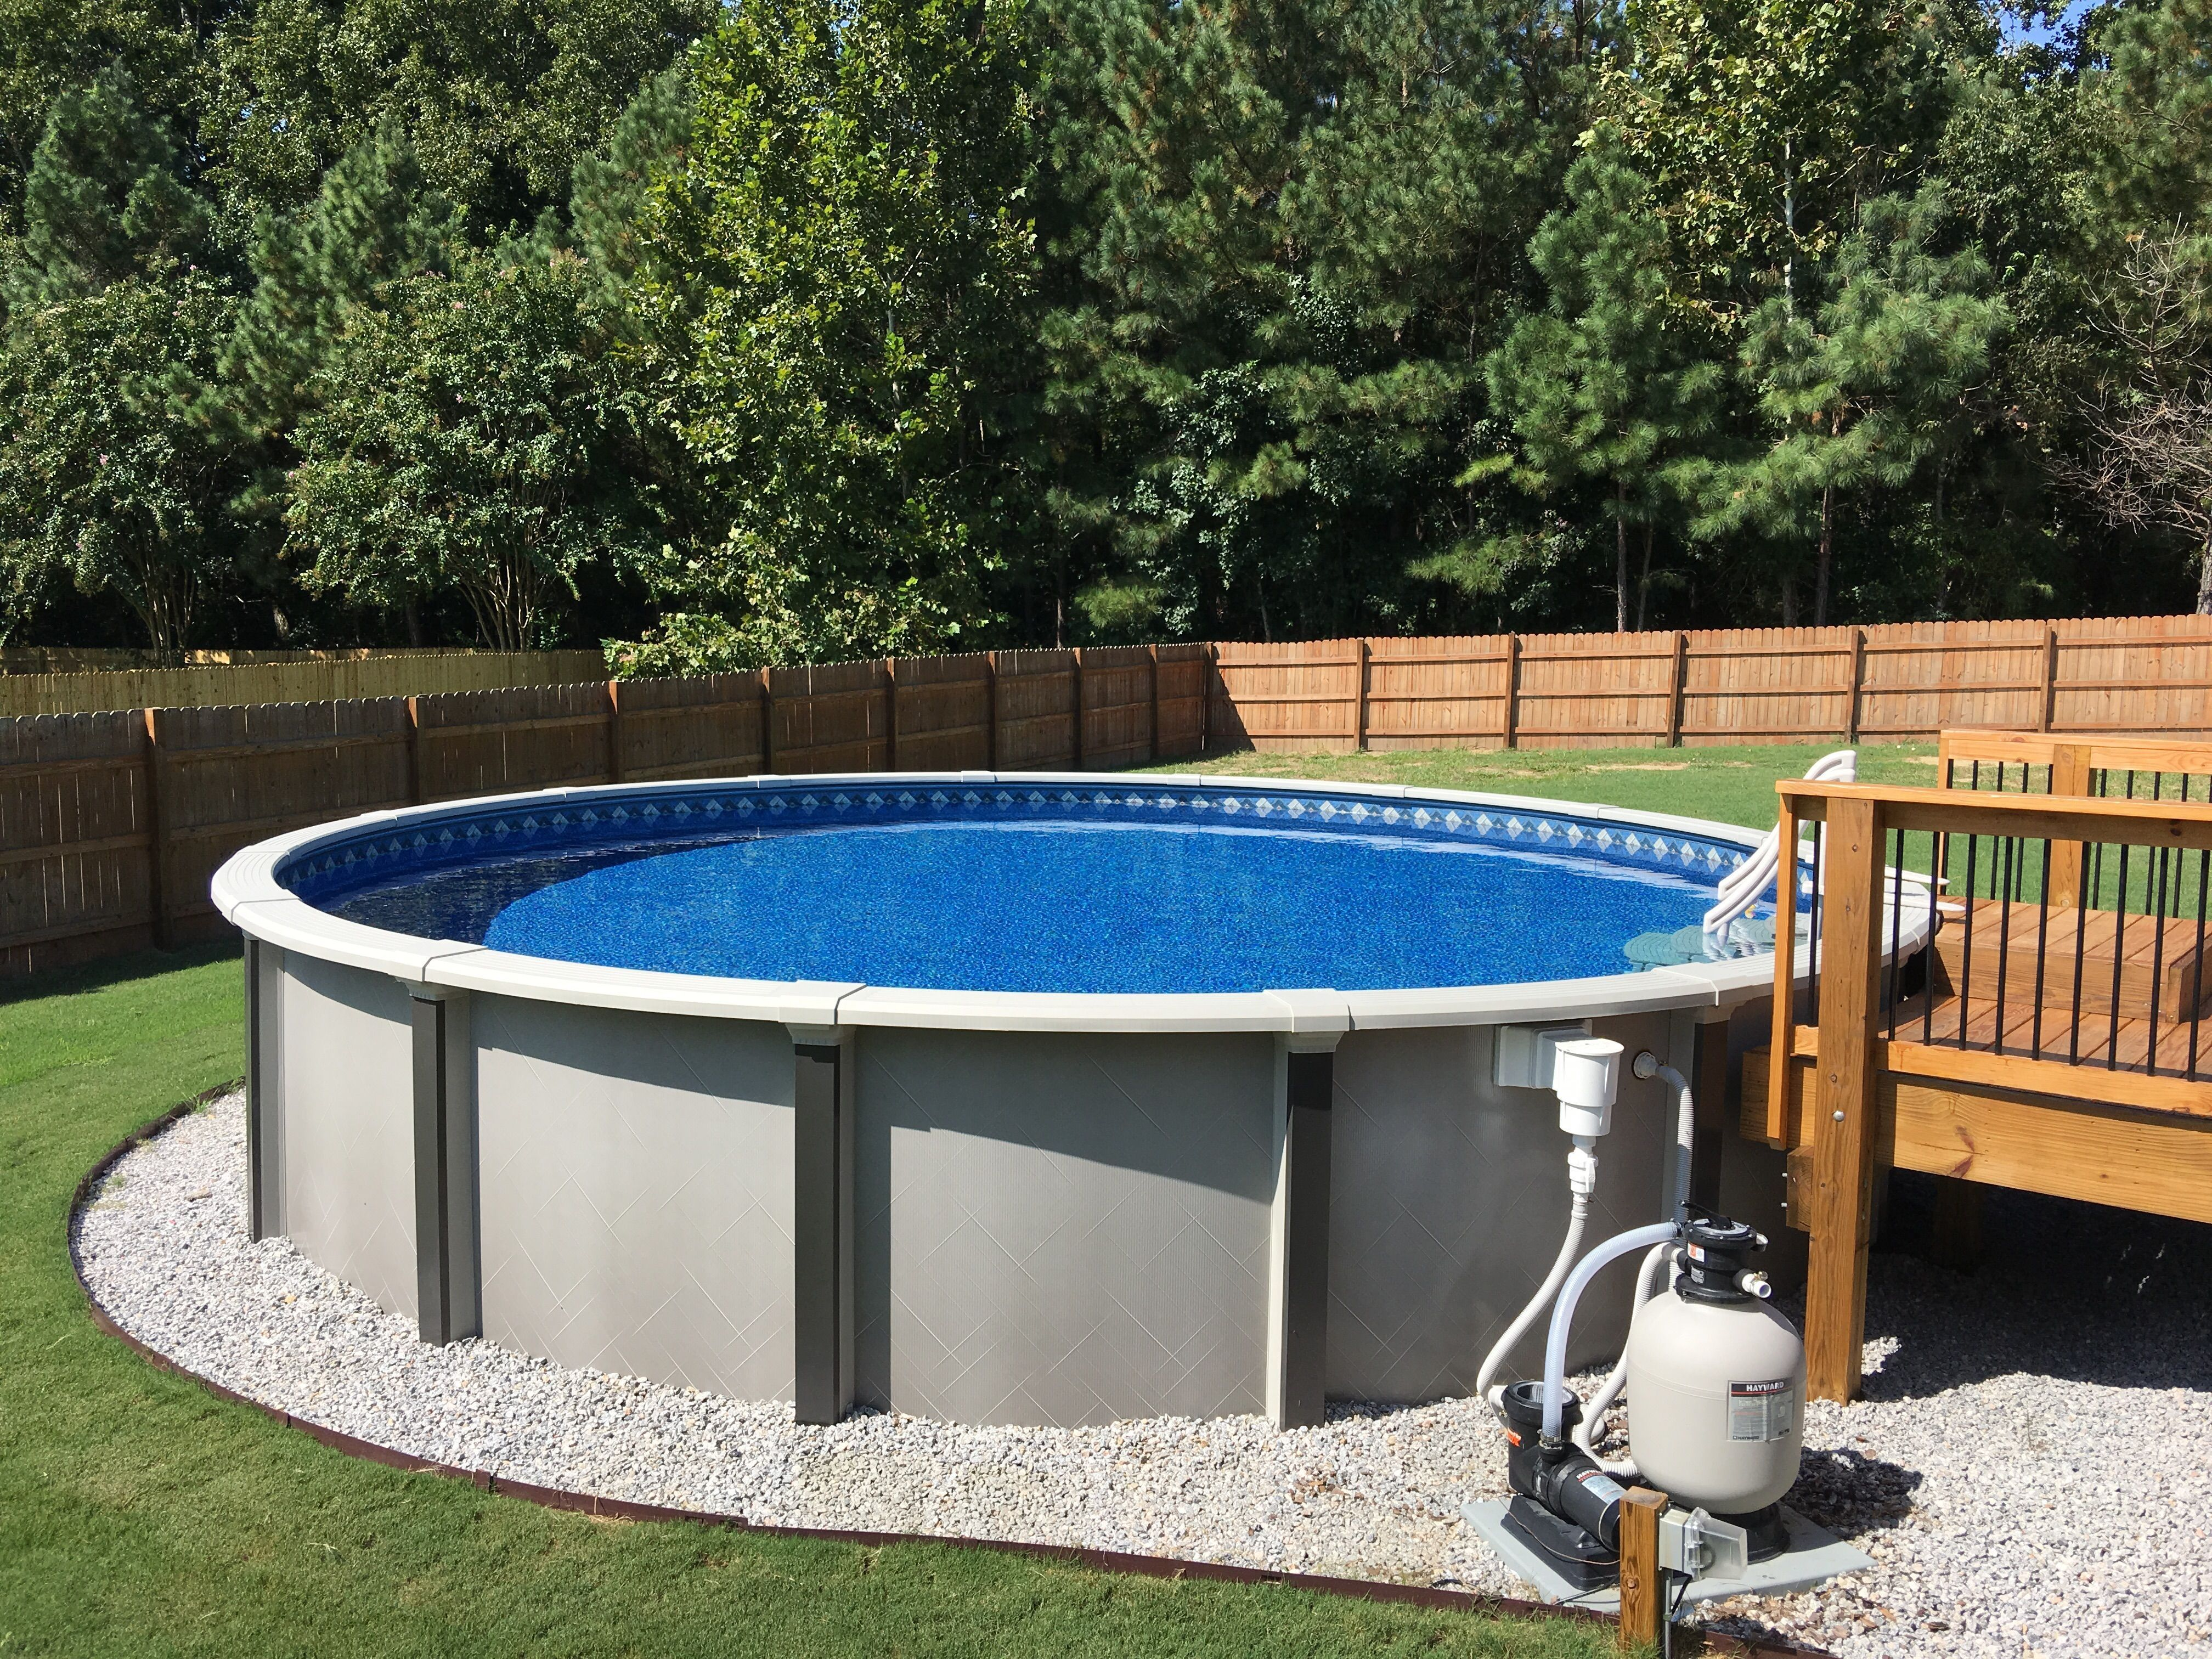 15 Above Ground Pool Ideas That Are Unbelievably Outstanding Archlux Net Best Above Ground Pool Backyard Pool Backyard Pool Landscaping